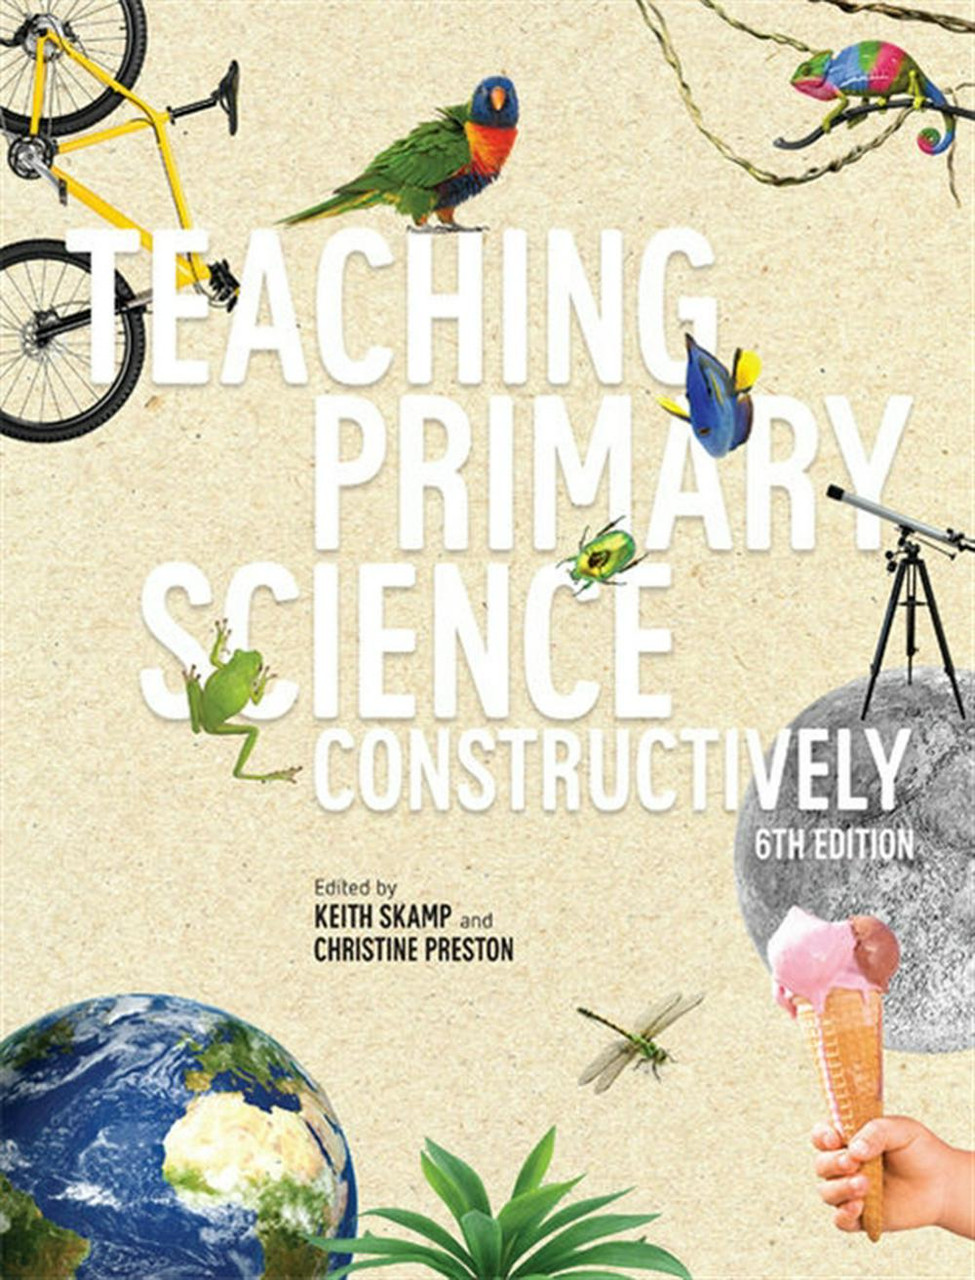 Teaching Primary Science Constructively, 6th Edition